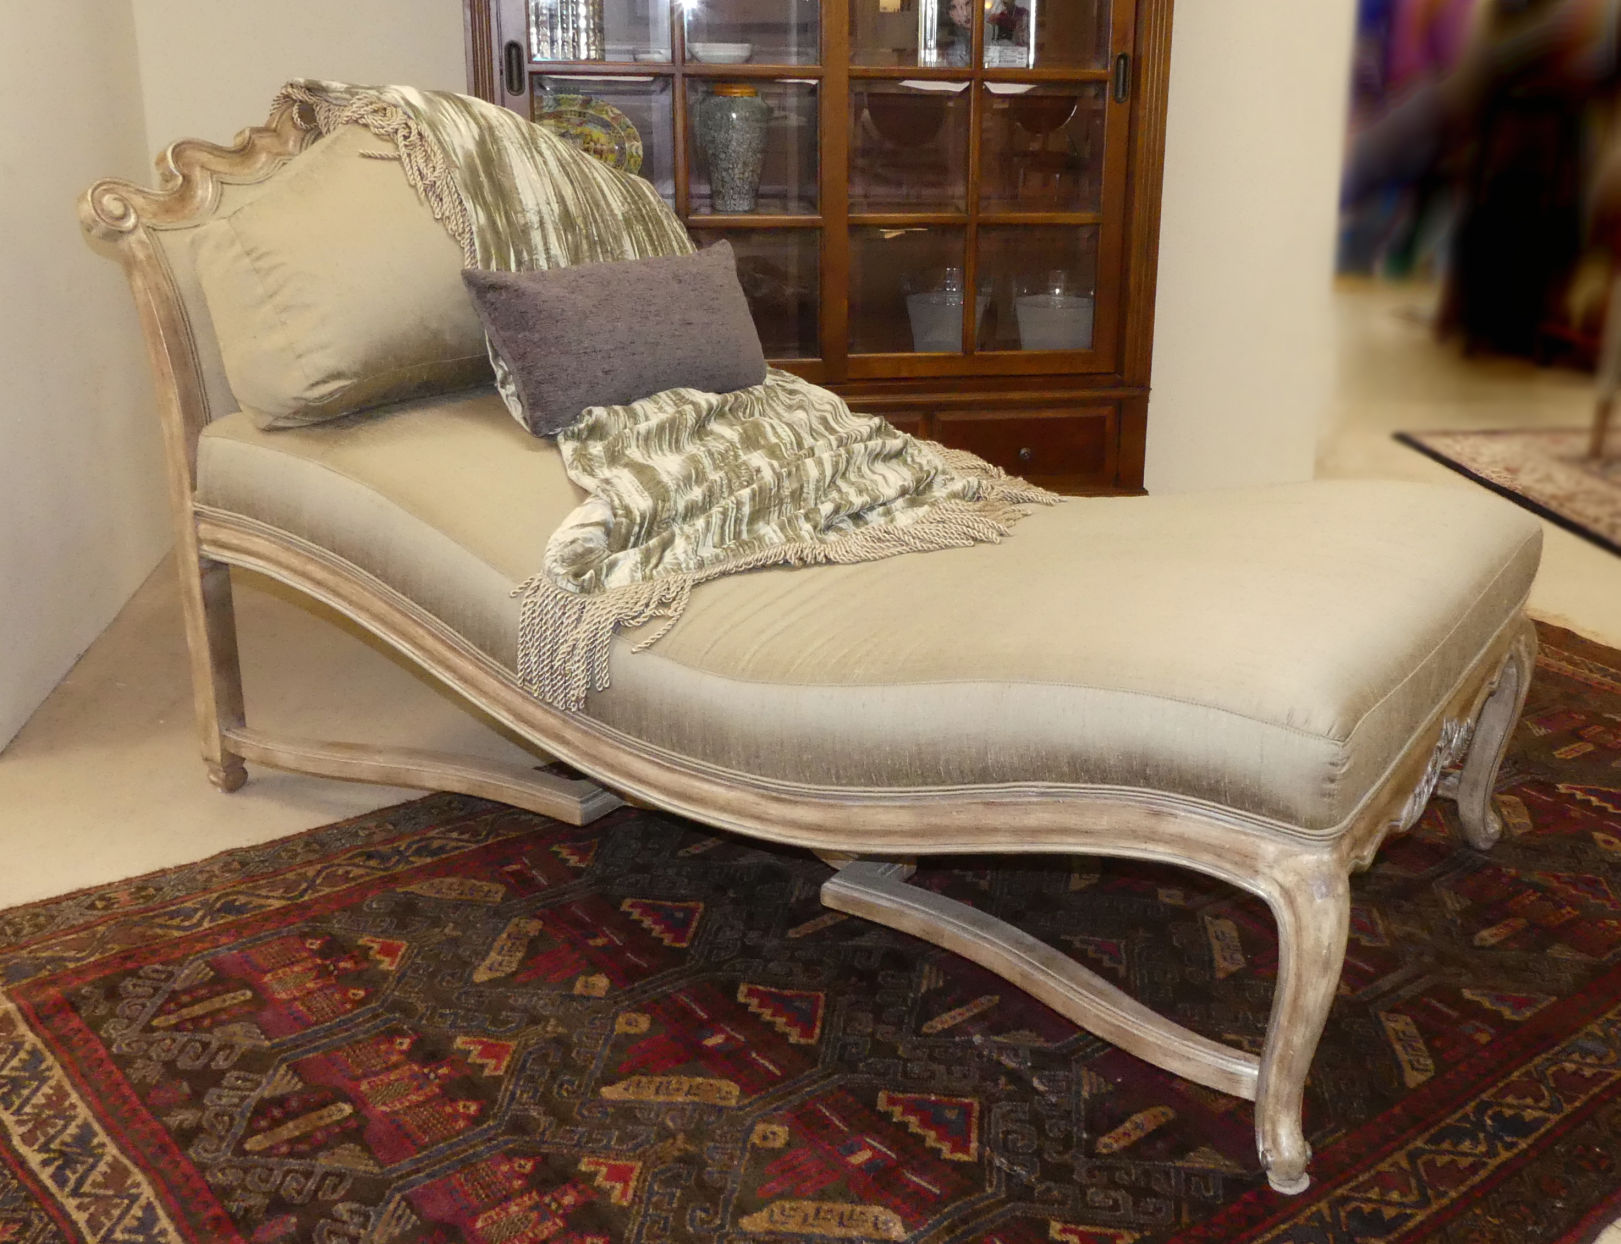 SOLD French Transitional Silk Upholstered Chaise Lounge